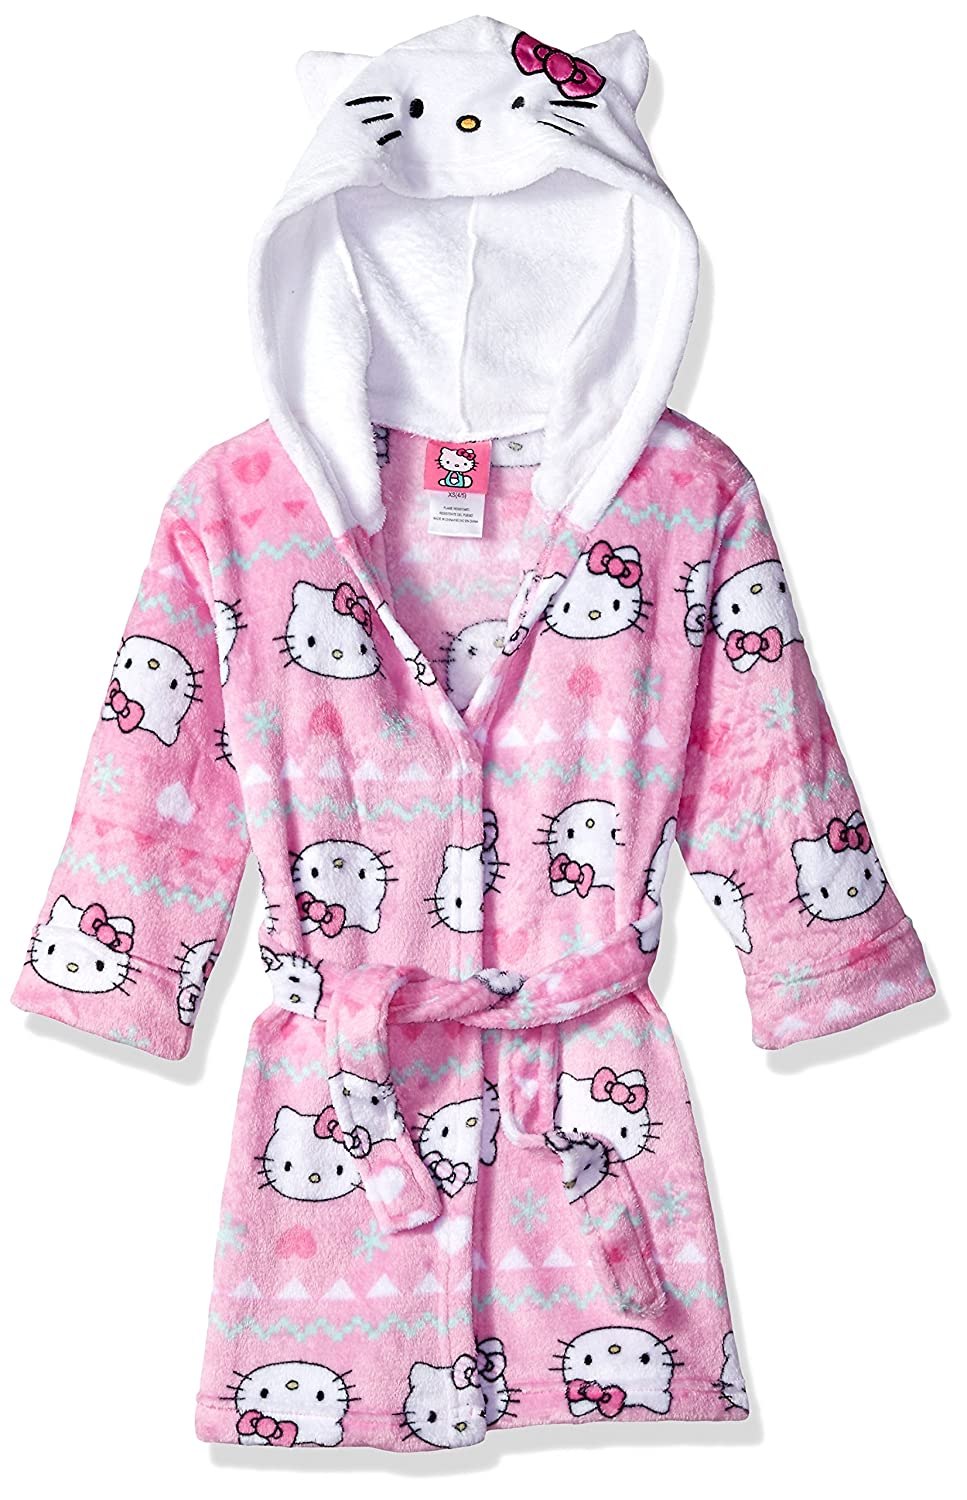 4ffb4f5a1 Amazon.com: Hello Kitty Girls' Big Snowflake Hooded Robe, Pink Small:  Clothing